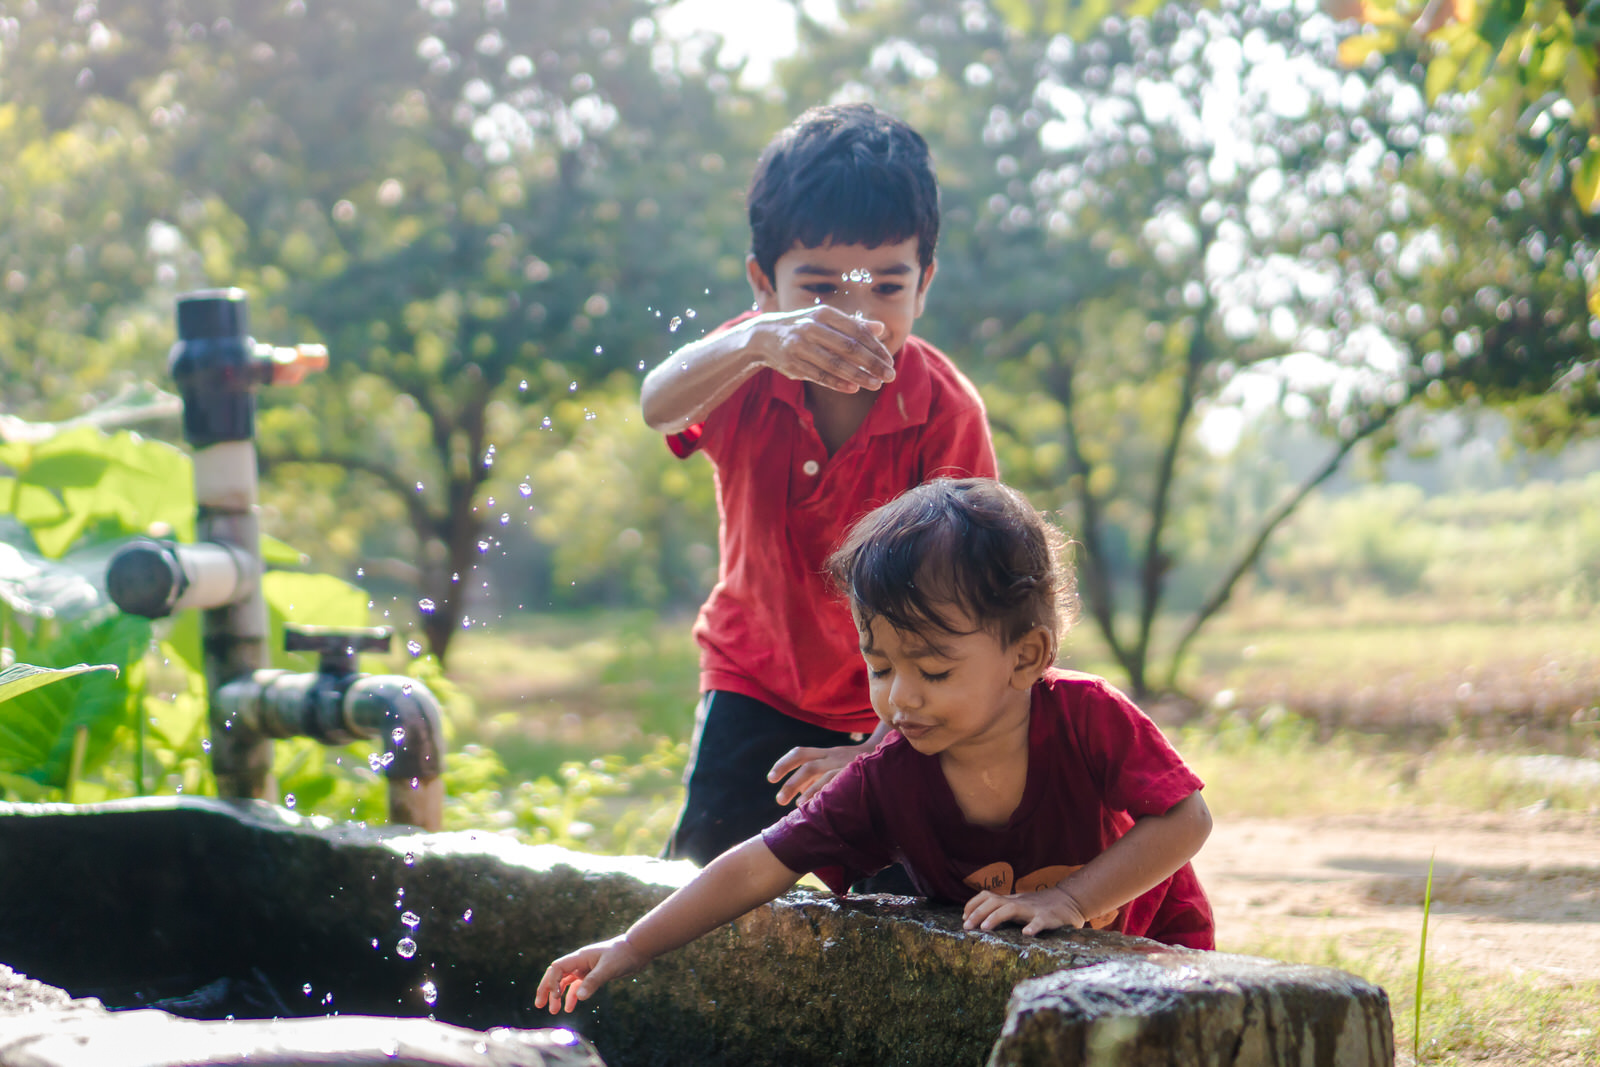 23122017-Boys-Playing-Water-Tank-262.jpg